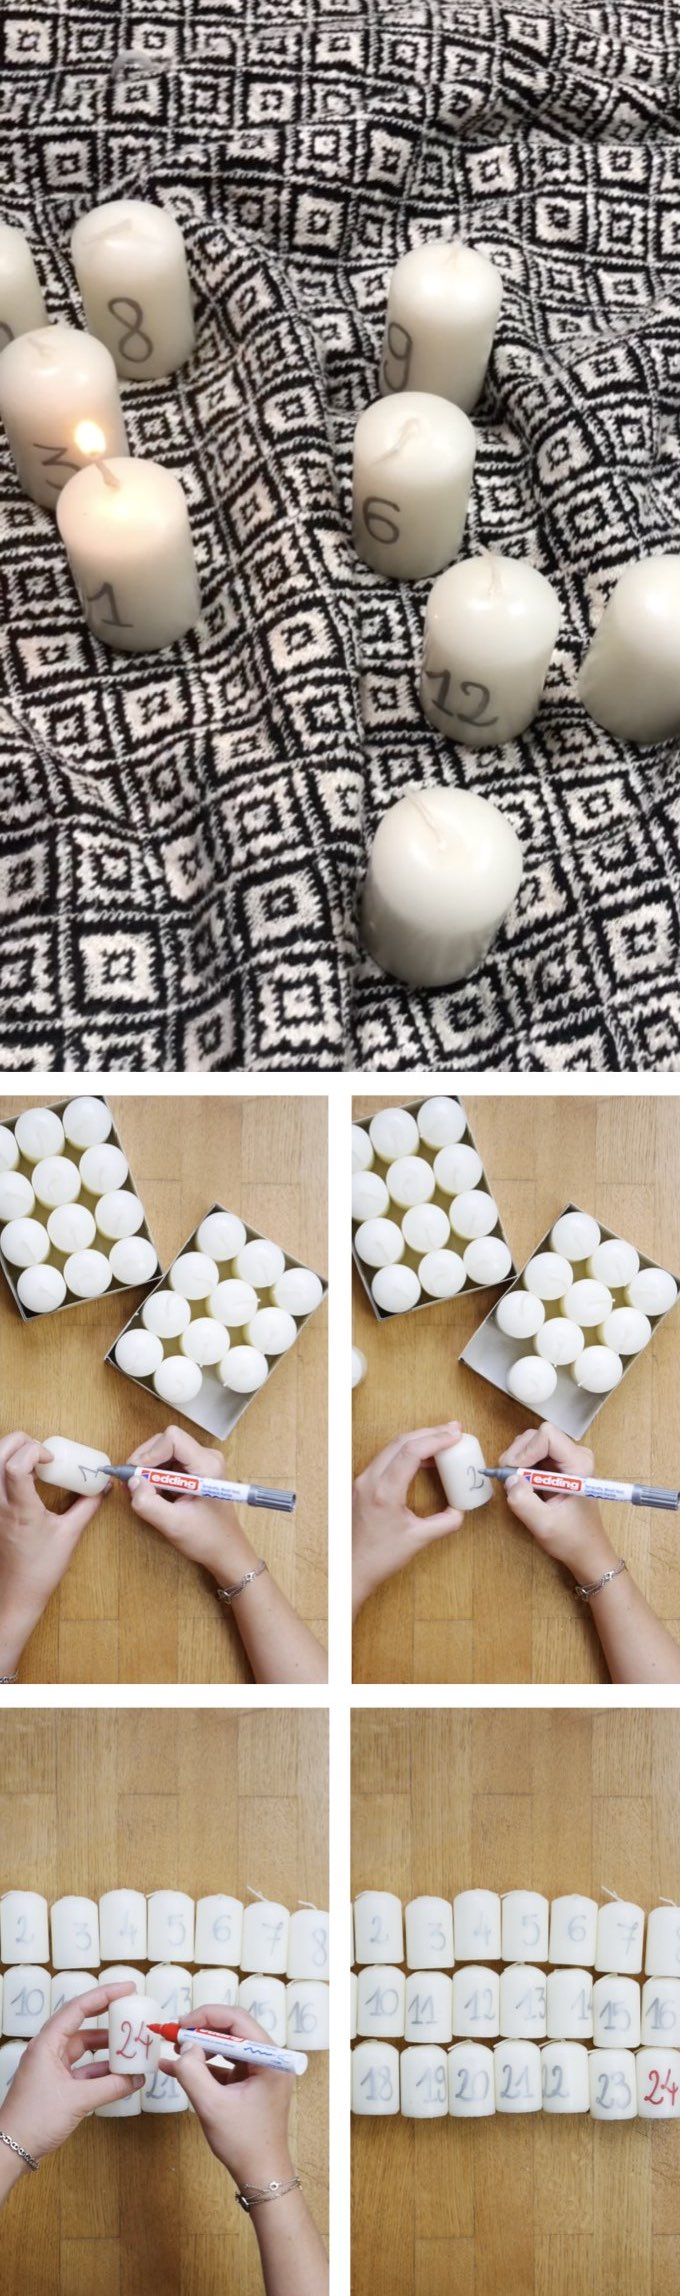 calendrier avent diy bougies décoration blog déco clem around the corner